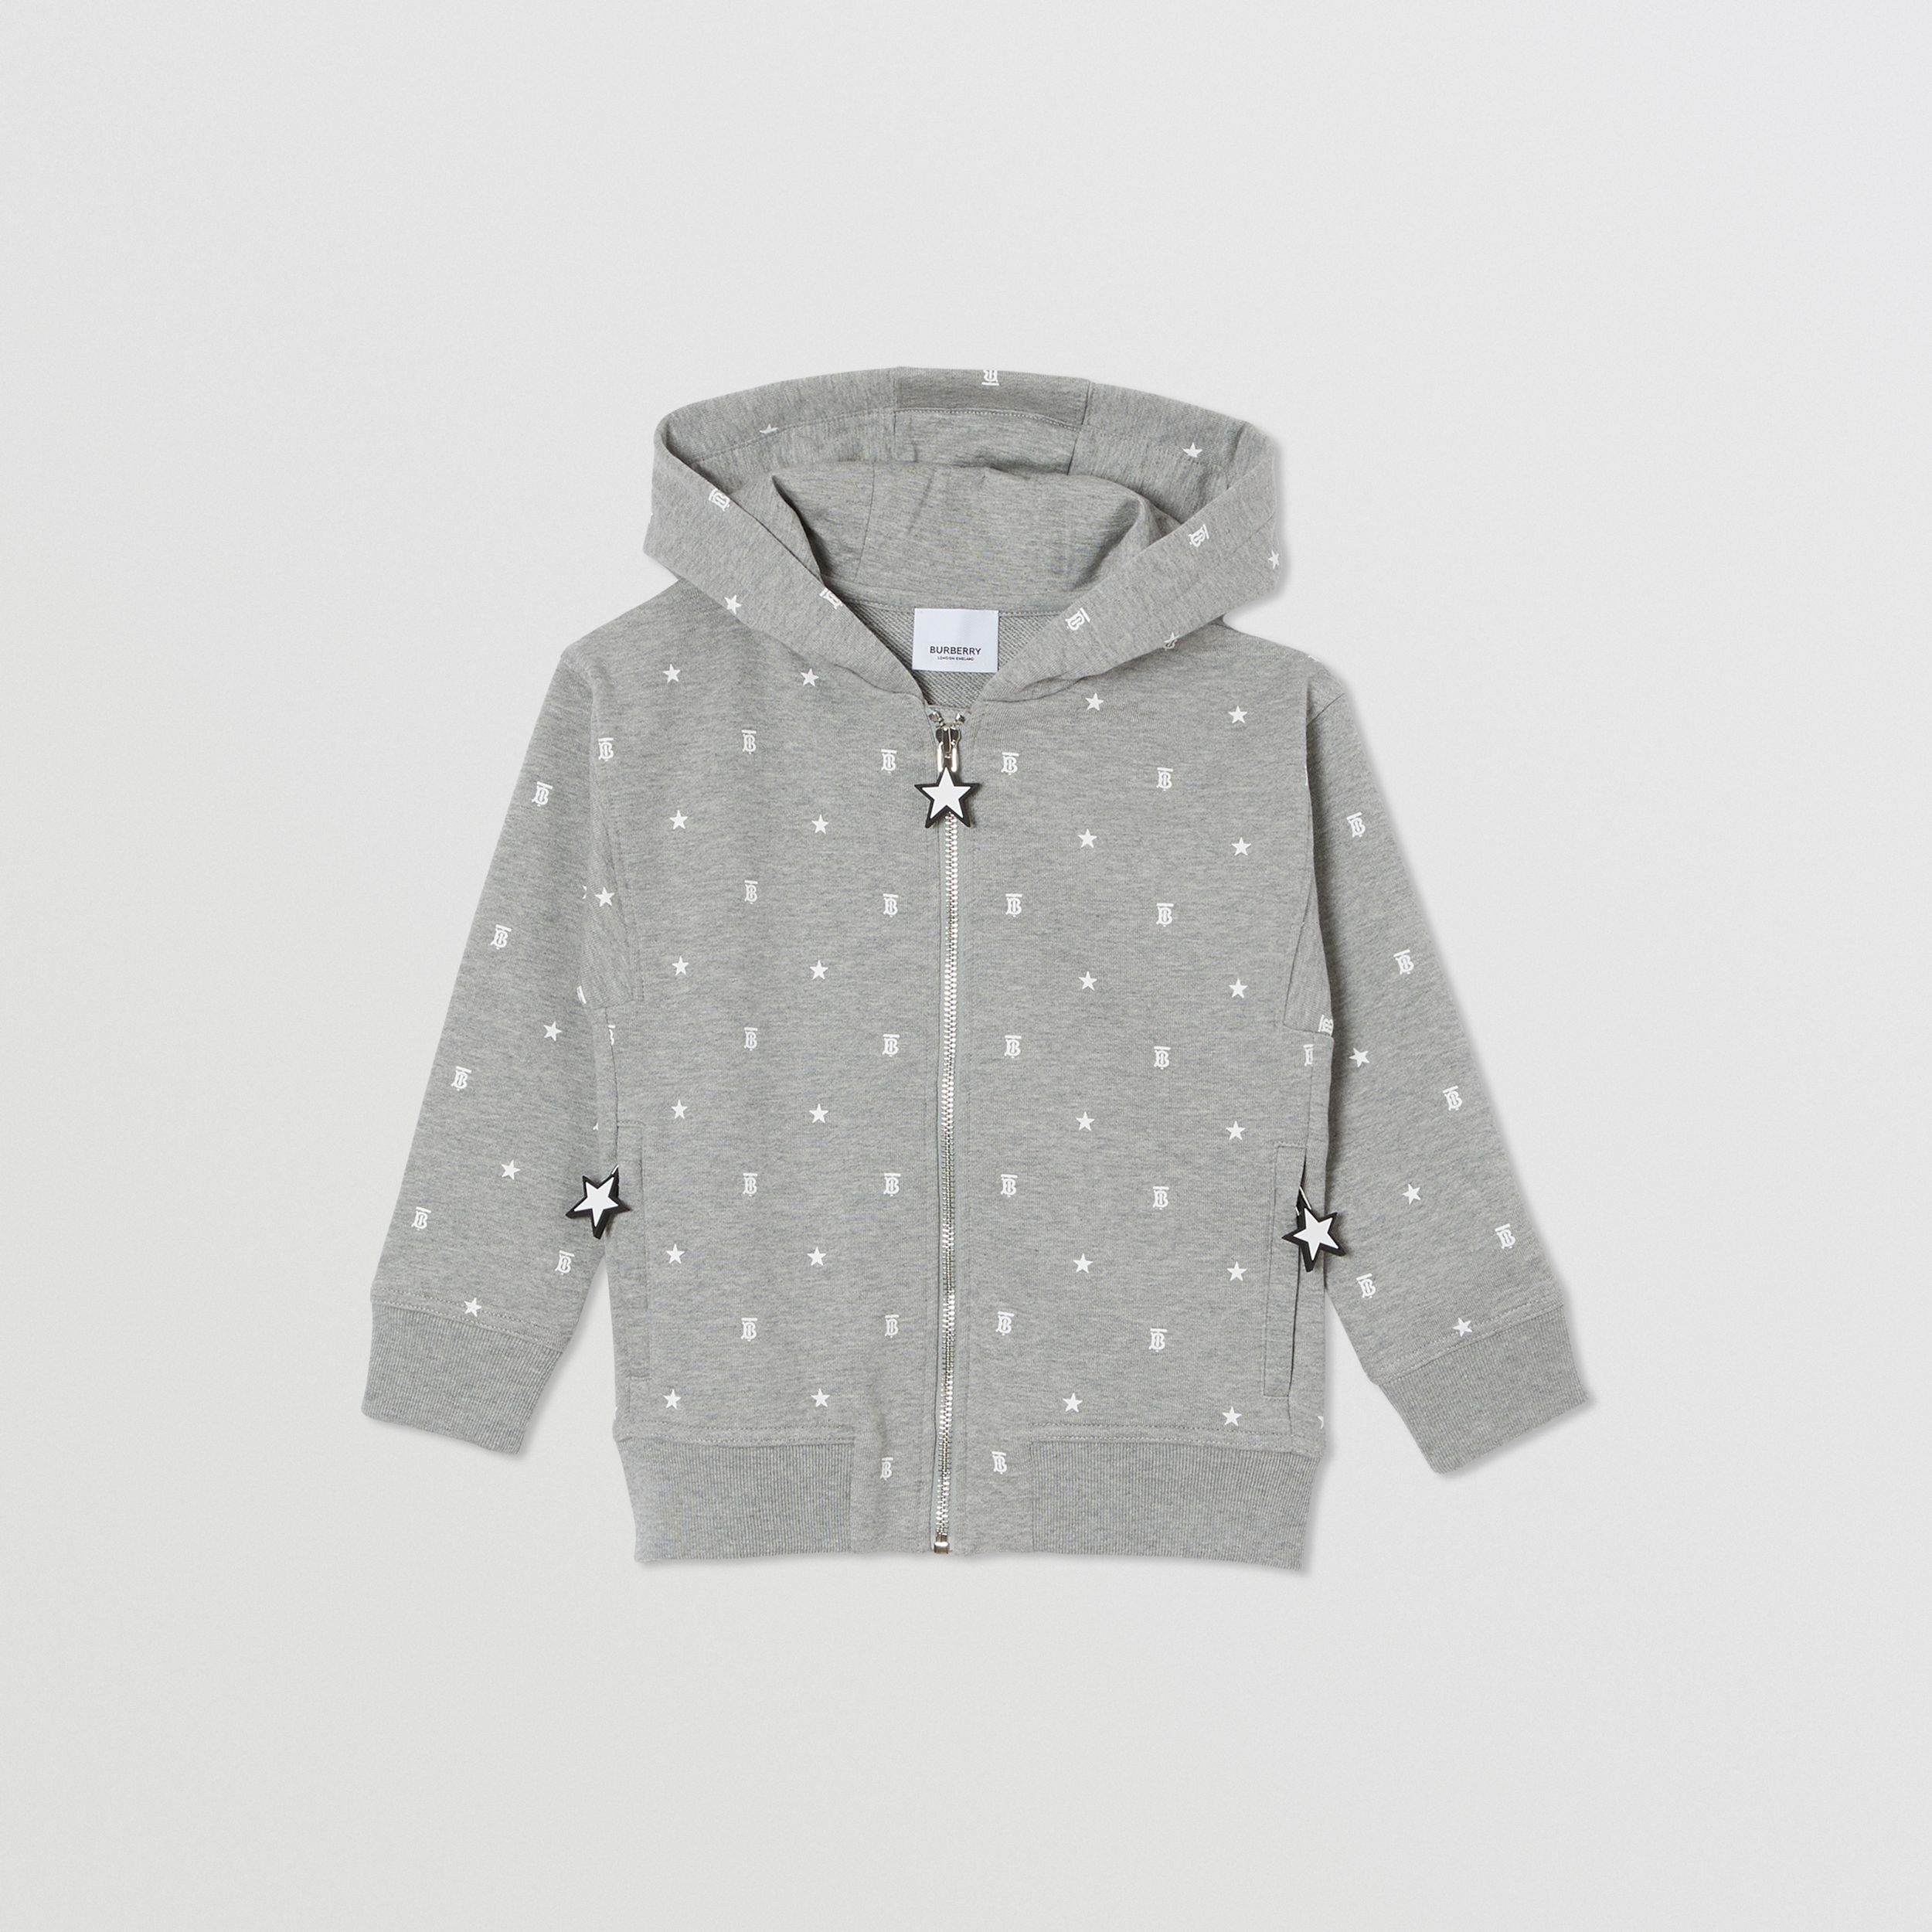 Star and Monogram Print Cotton Hooded Top in Grey | Burberry - 1